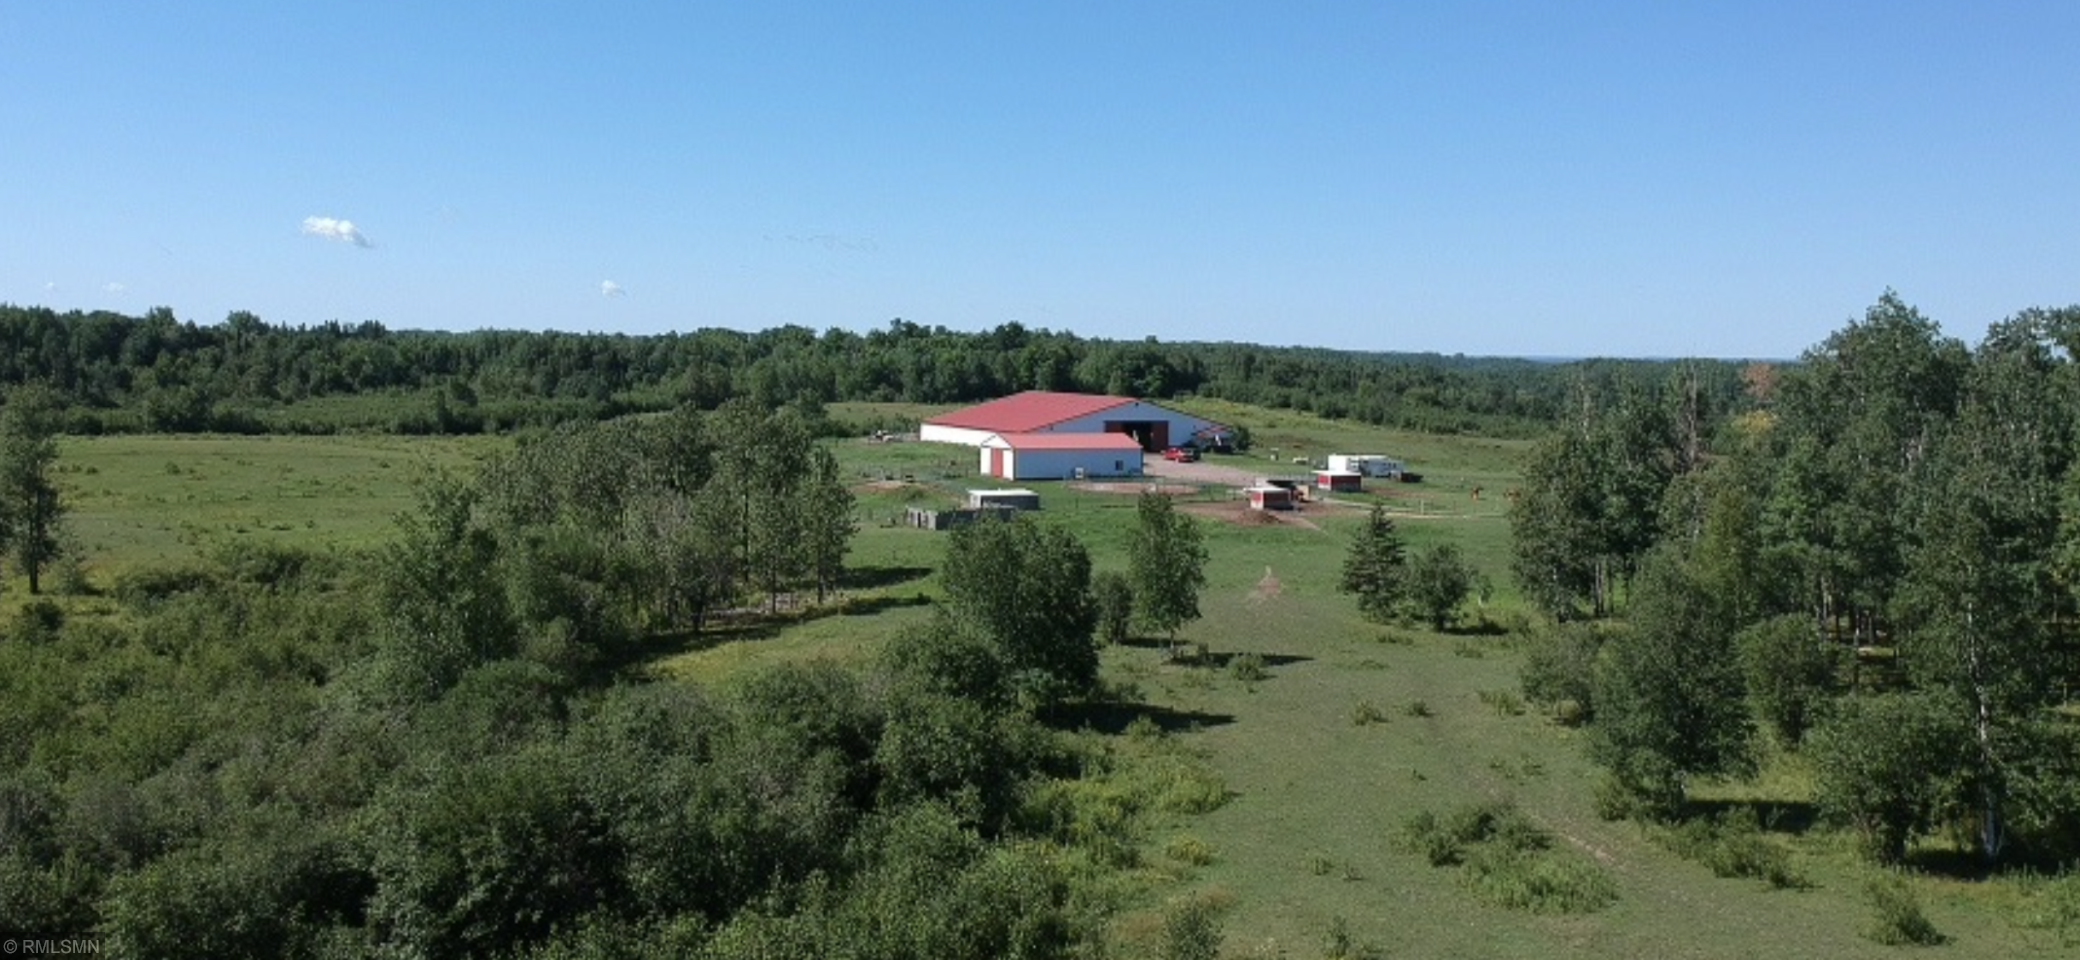 3412 Bent Trout Lake Road Property Photo - Barnum, MN real estate listing